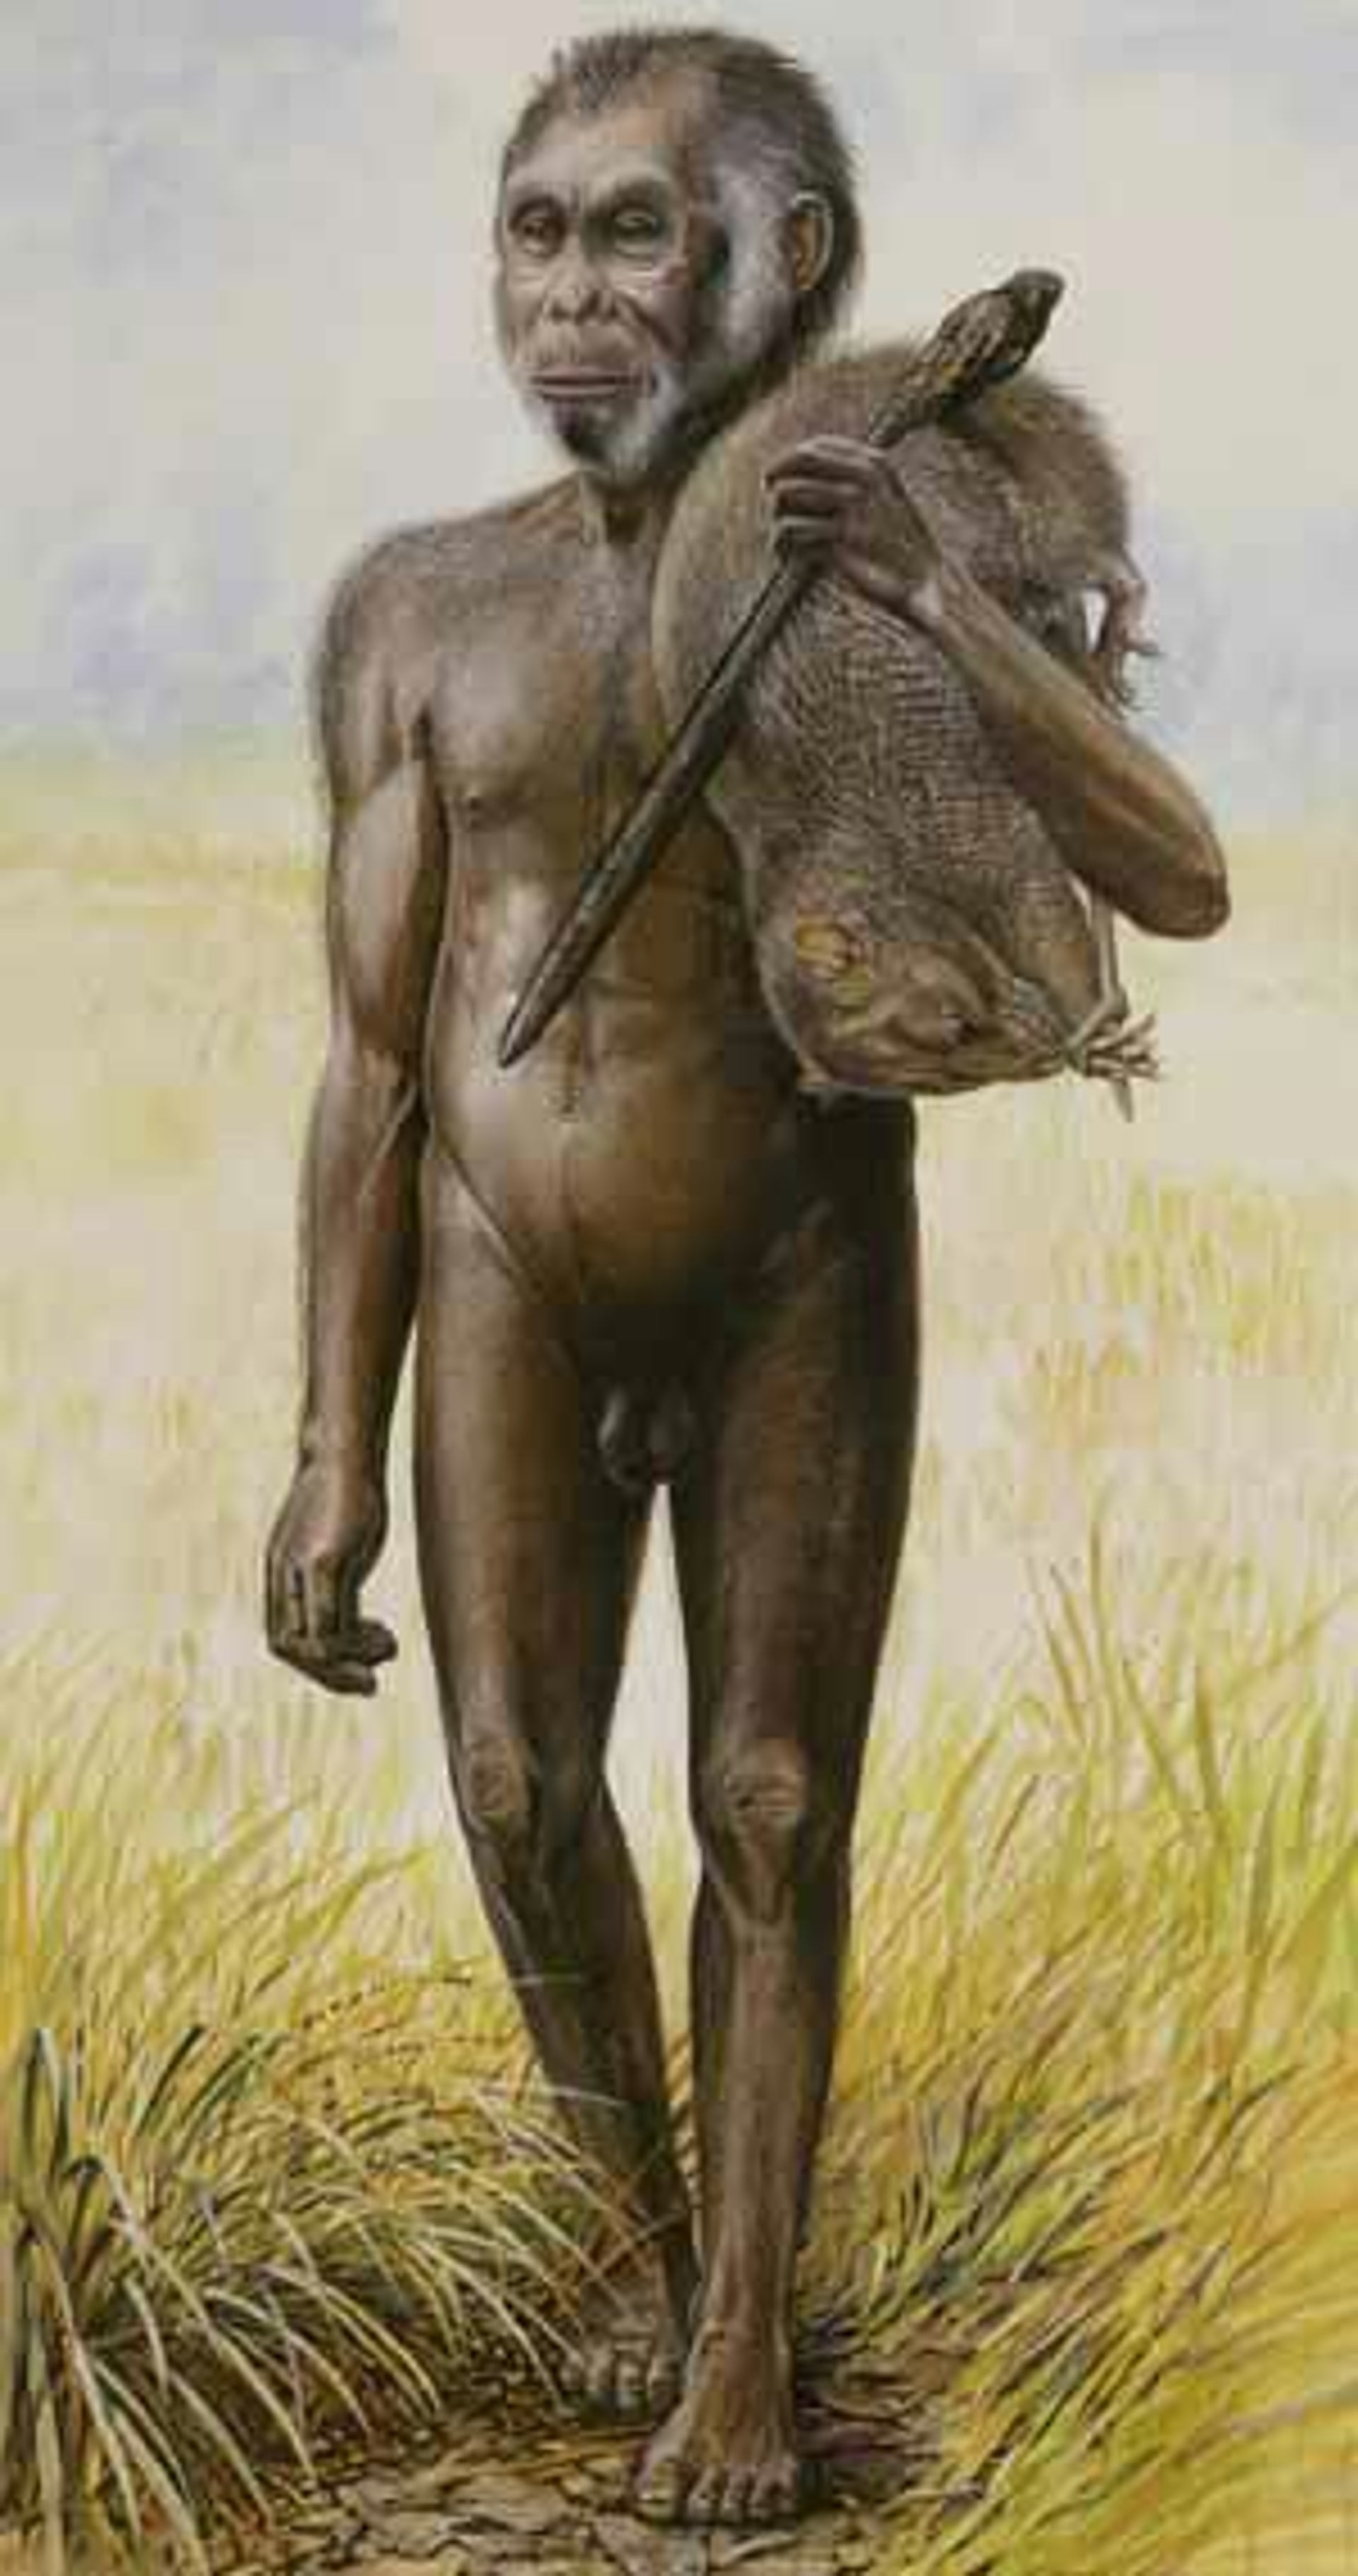 An artist's impression released by the University of Wollongong, south of Sydney, of Homo floresiensis on the Indonesian island of Flores in 2004.